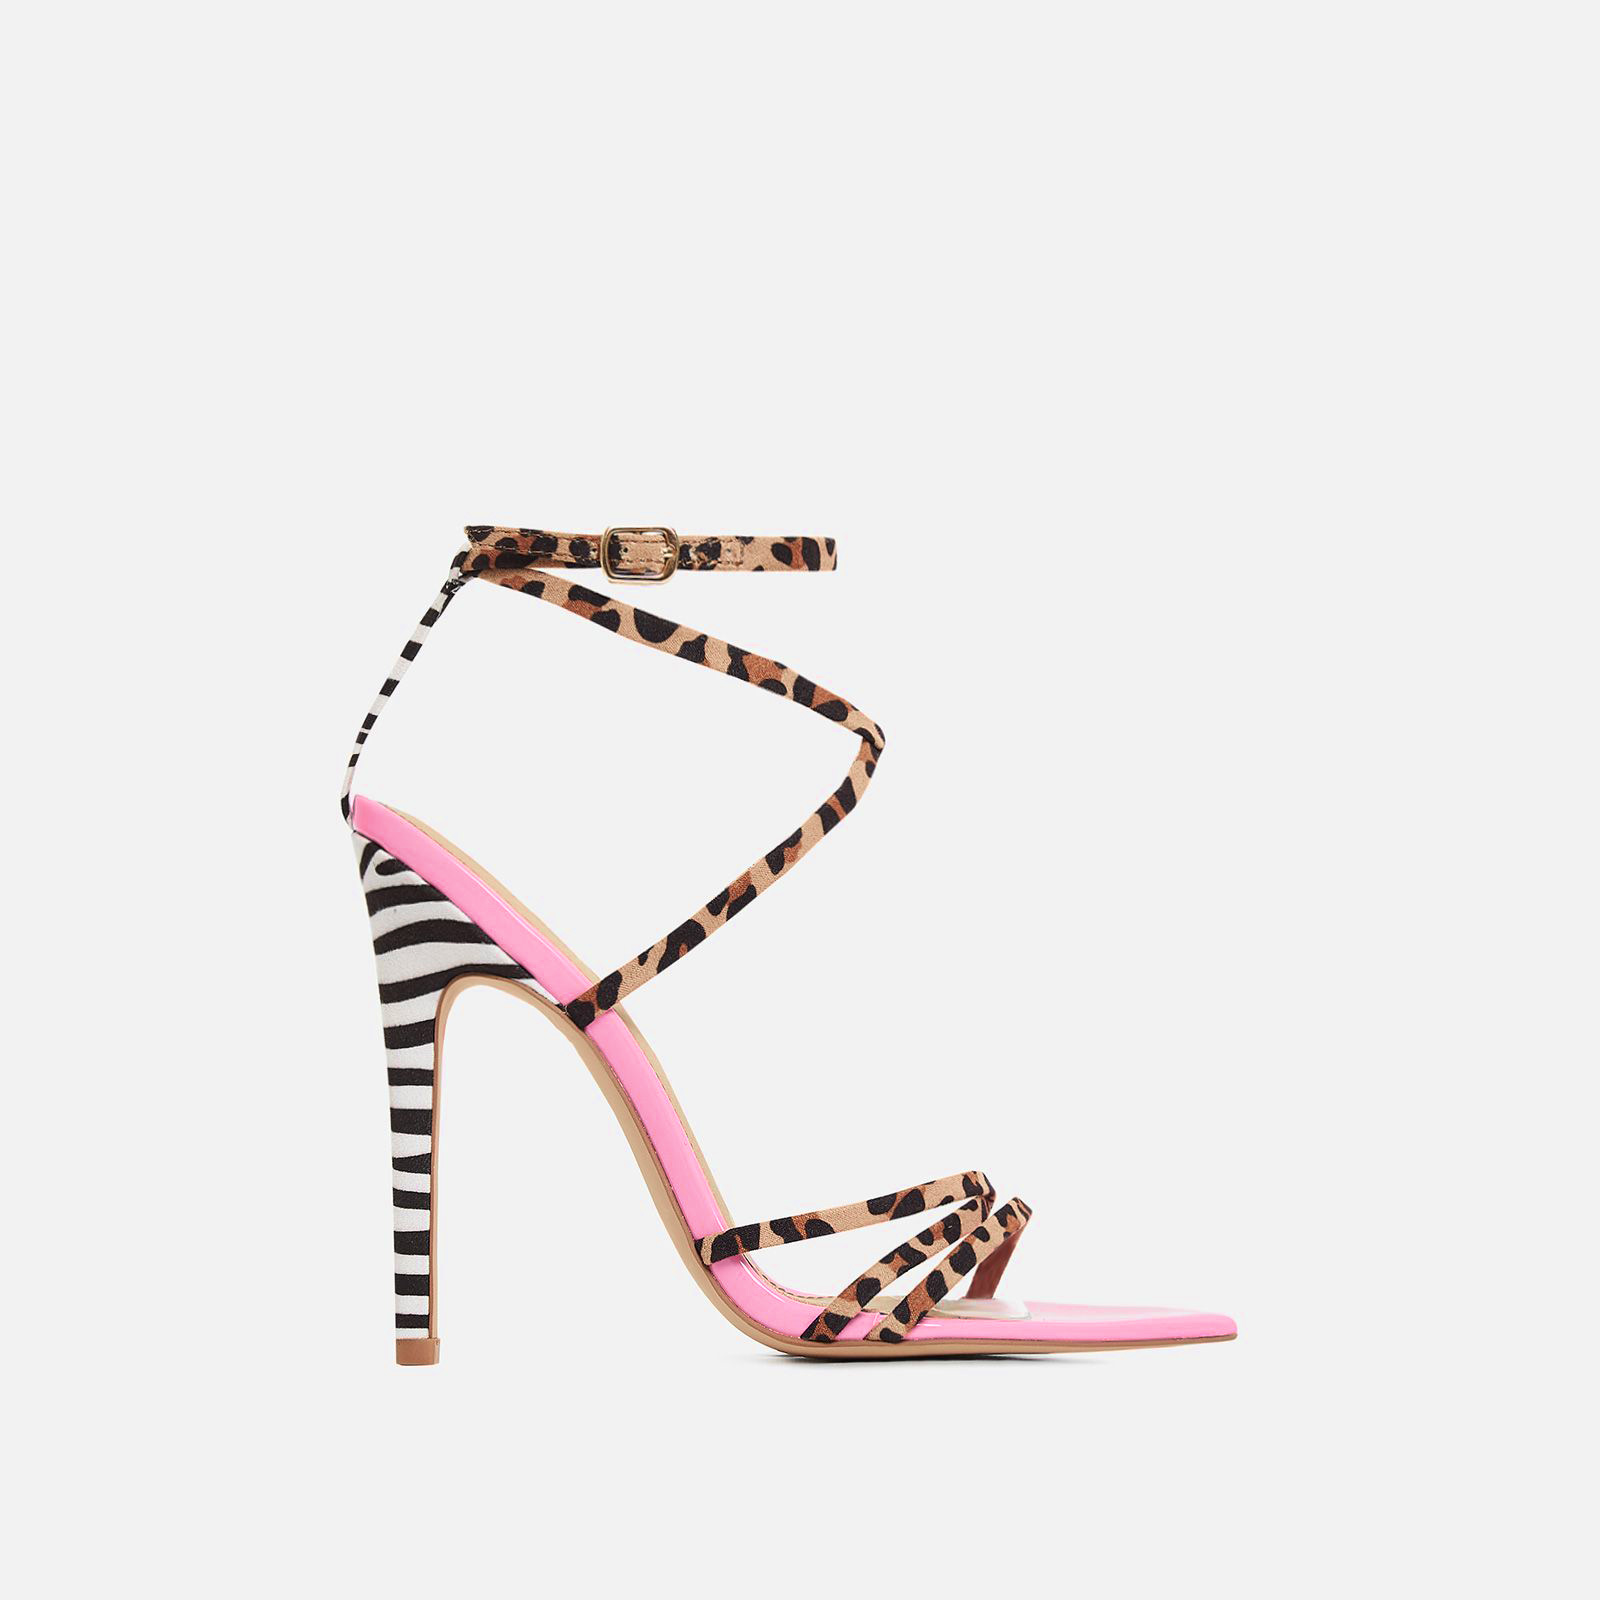 Raja Animal Print Pointed Barely There Heel In Pink Patent